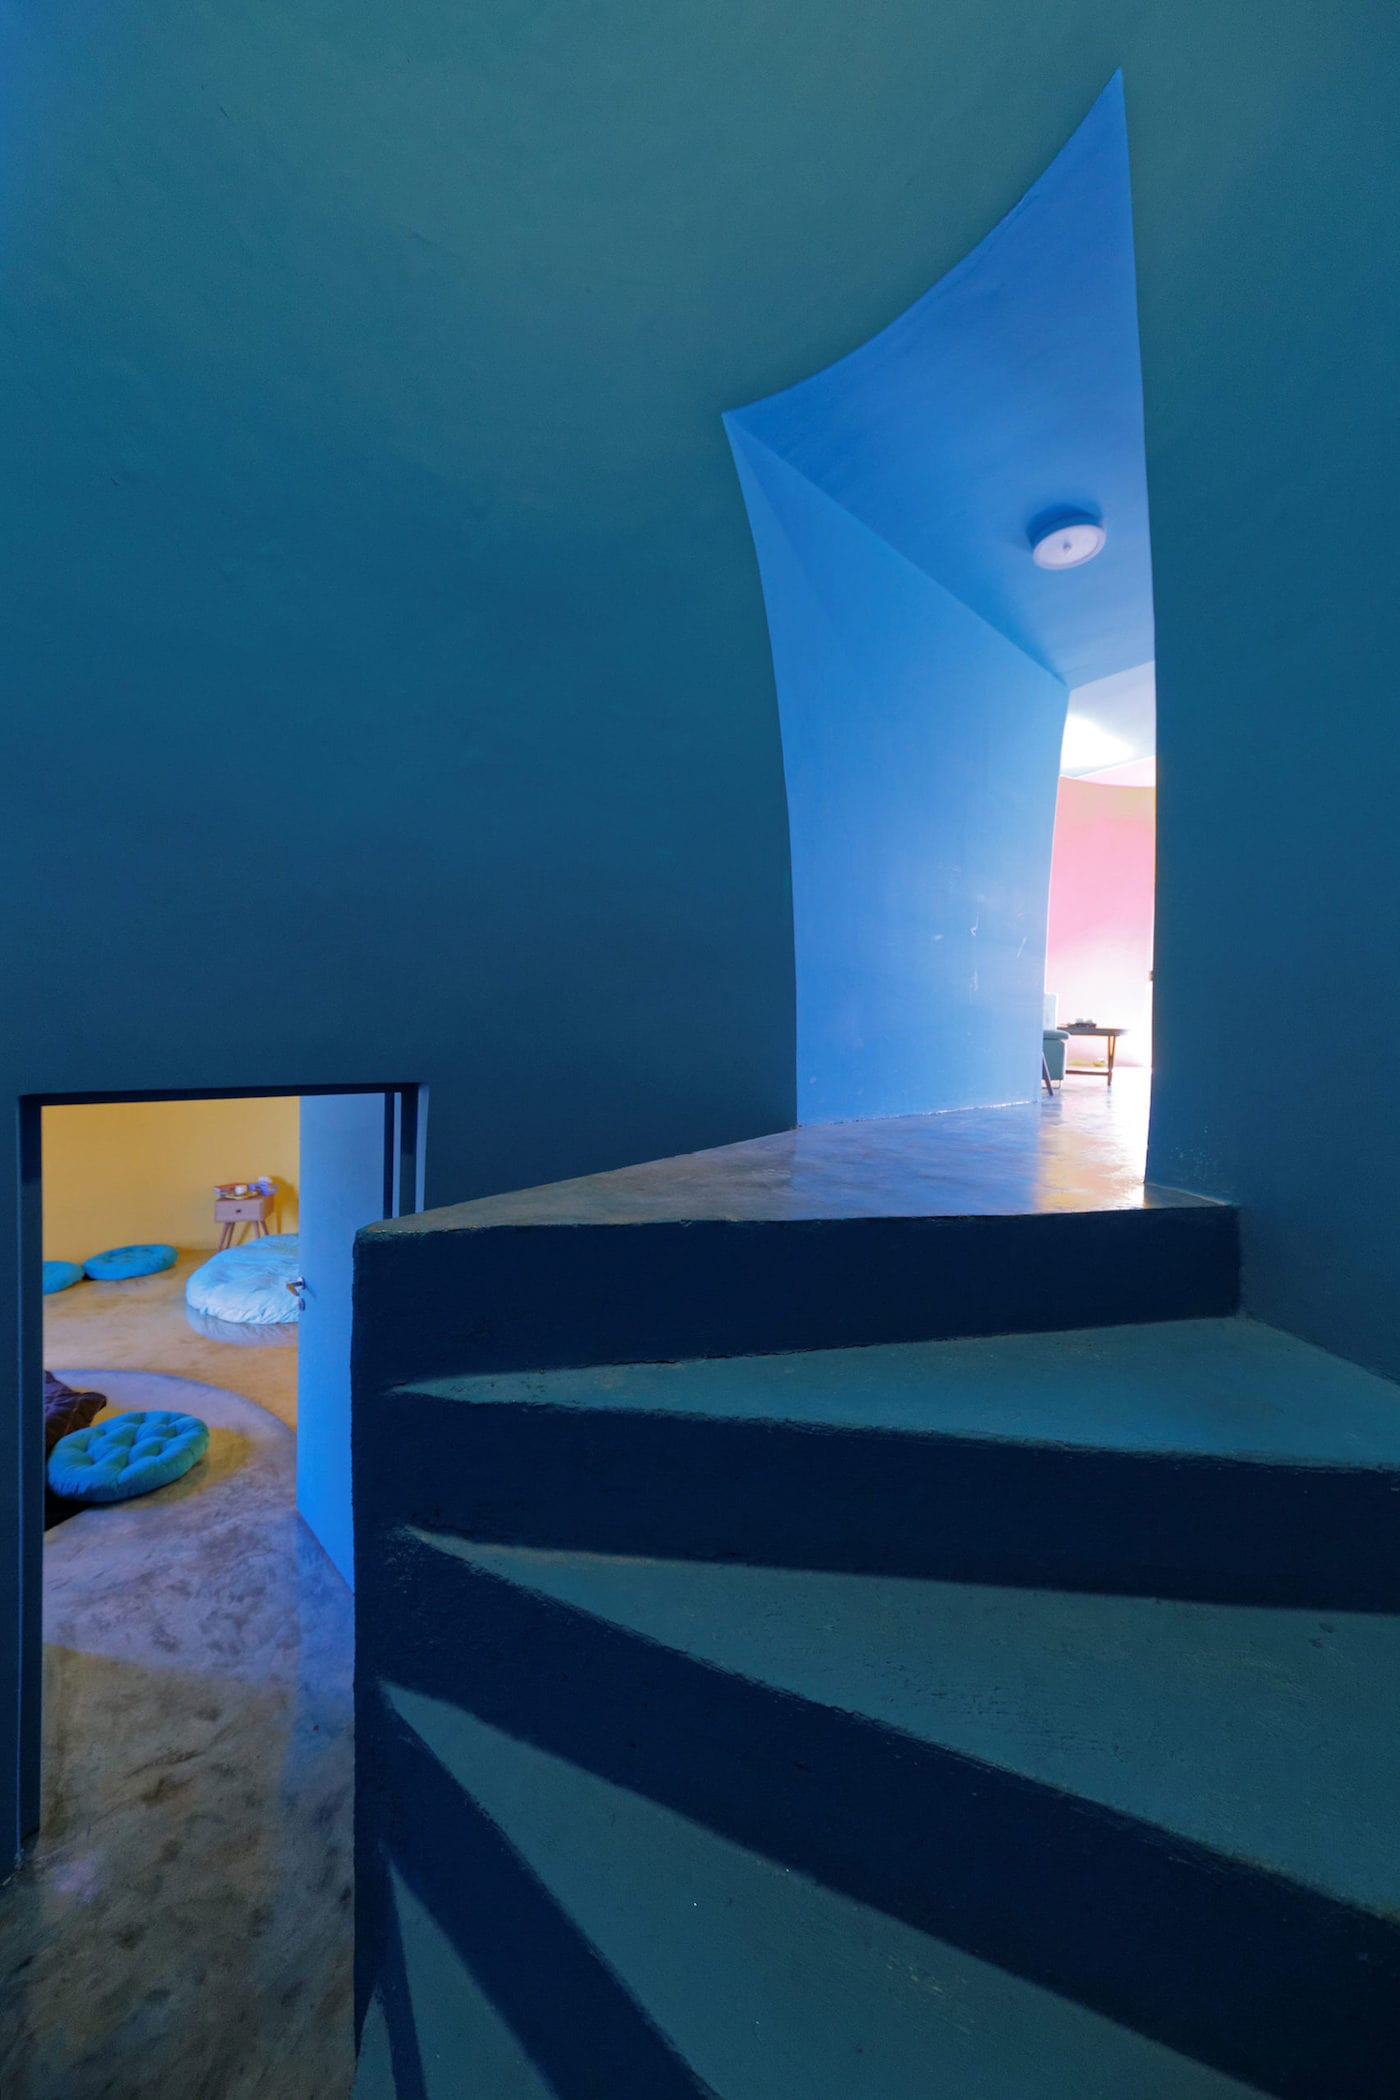 Curved blue staircase in rammed earth dome